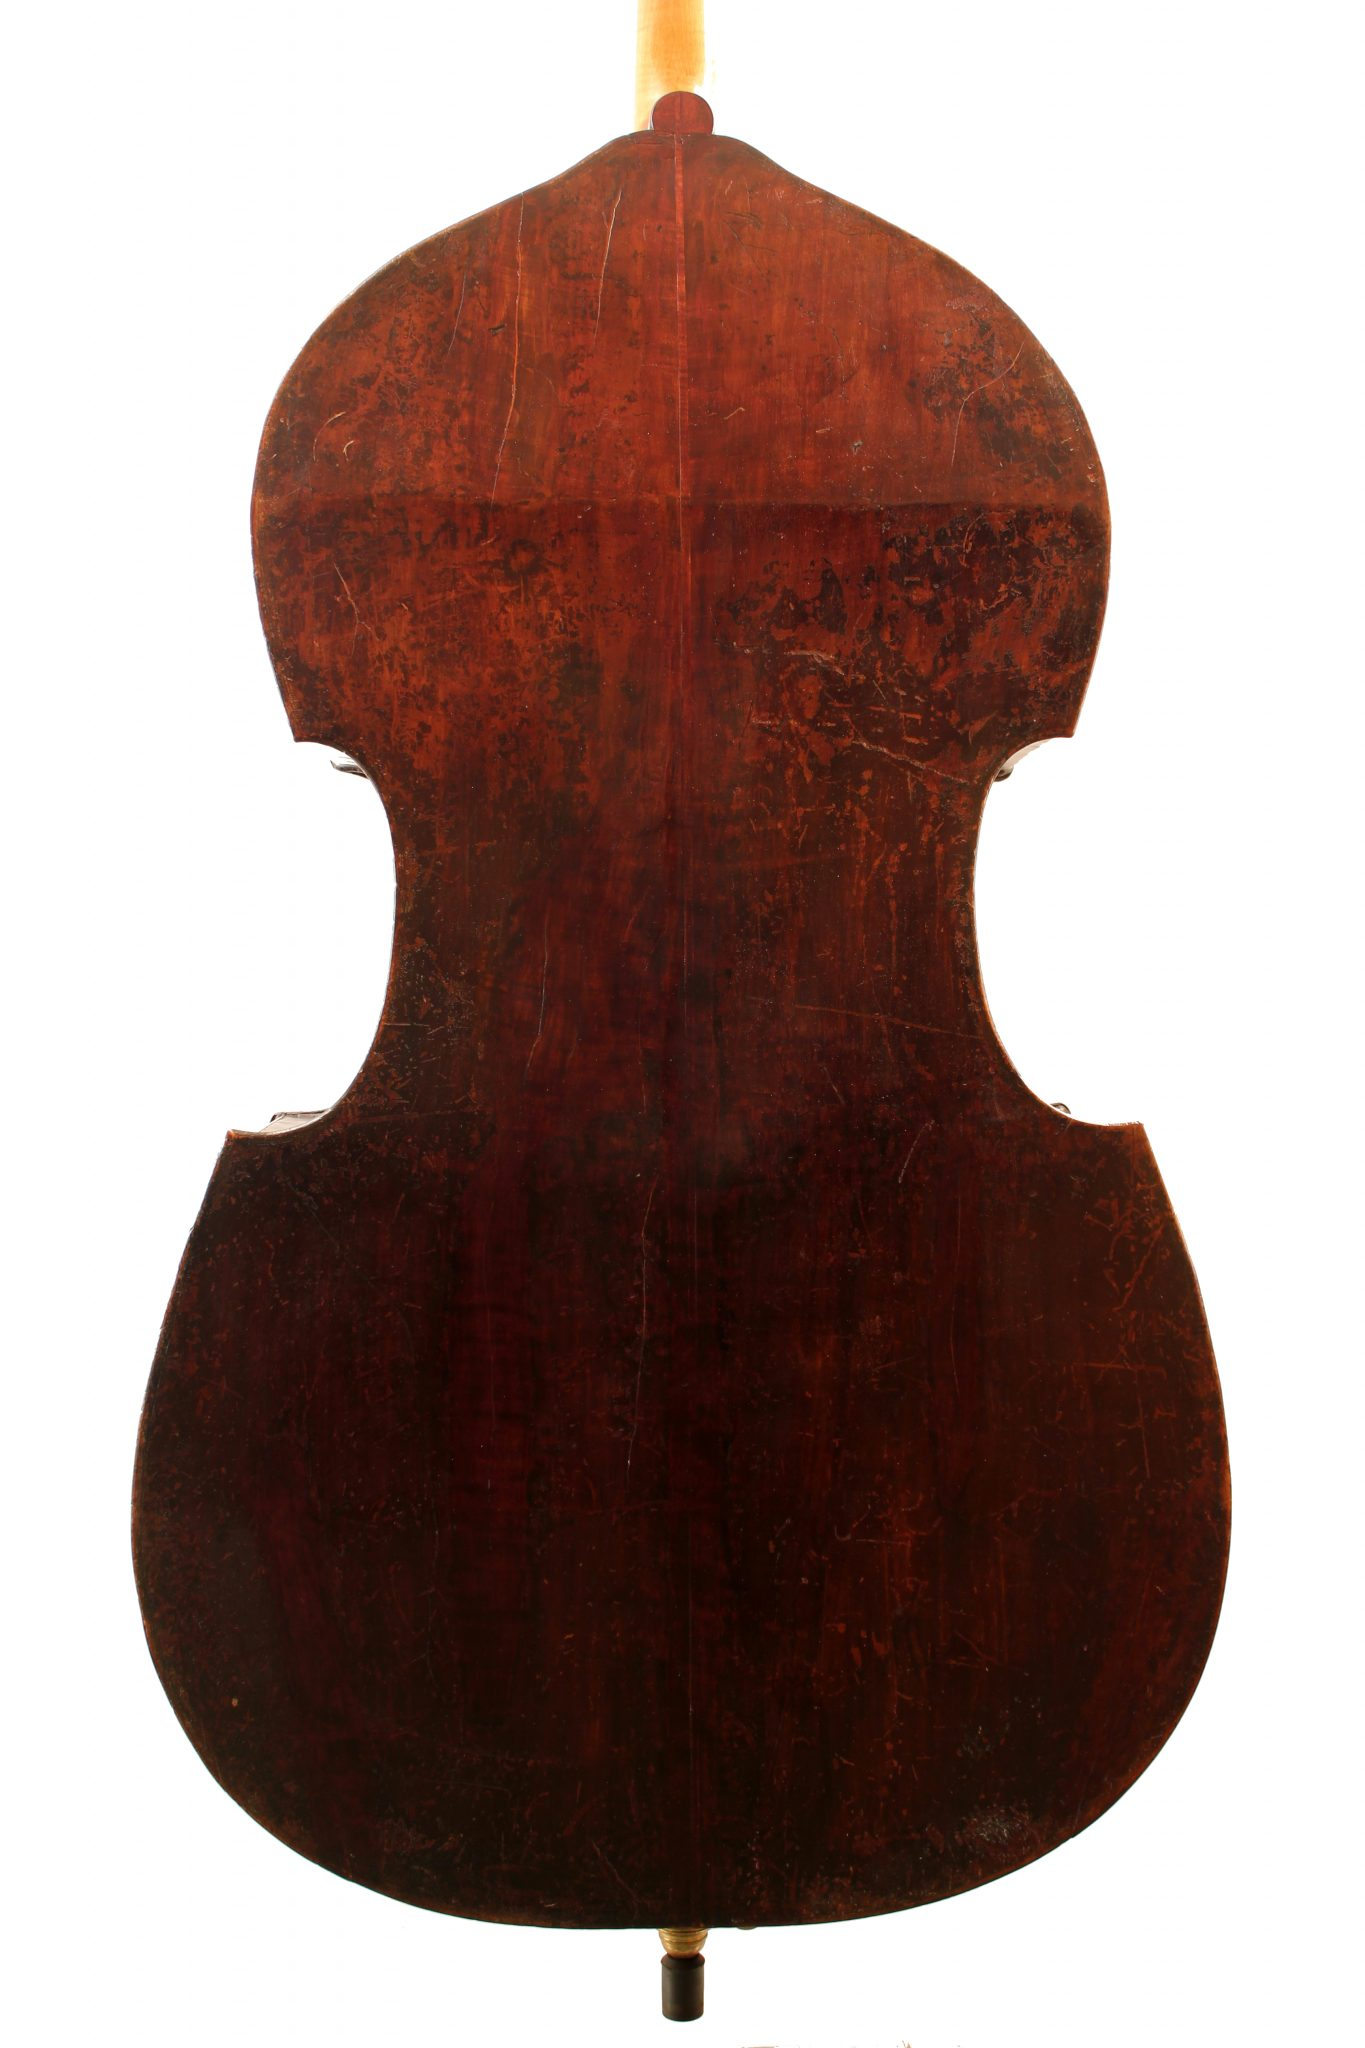 German double bass c1890 for sale at Bridgewood and Neitzert London